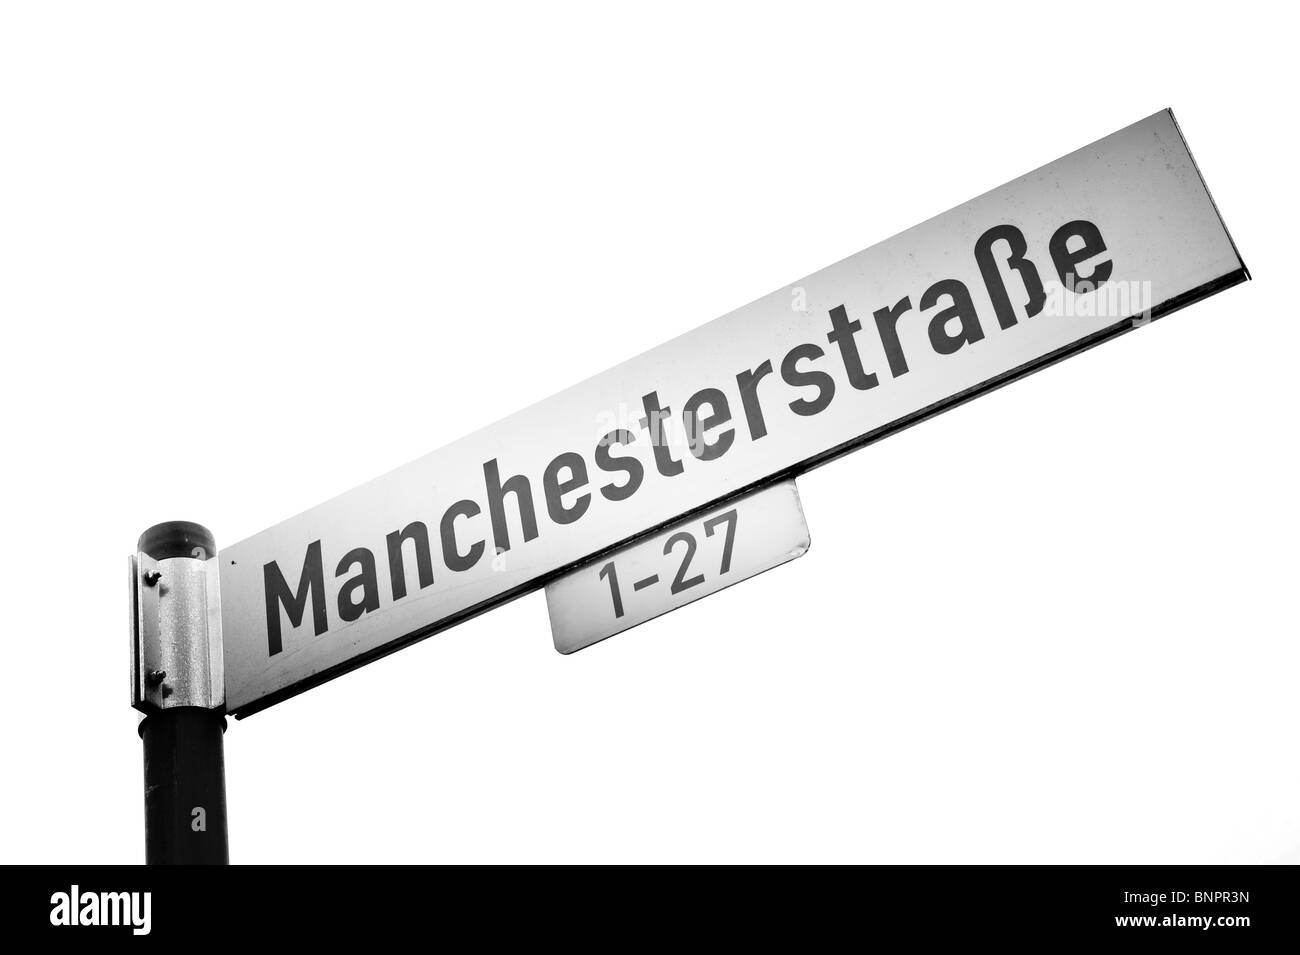 manchesterstrasse street sign bielefeld germany manchester - Stock Image